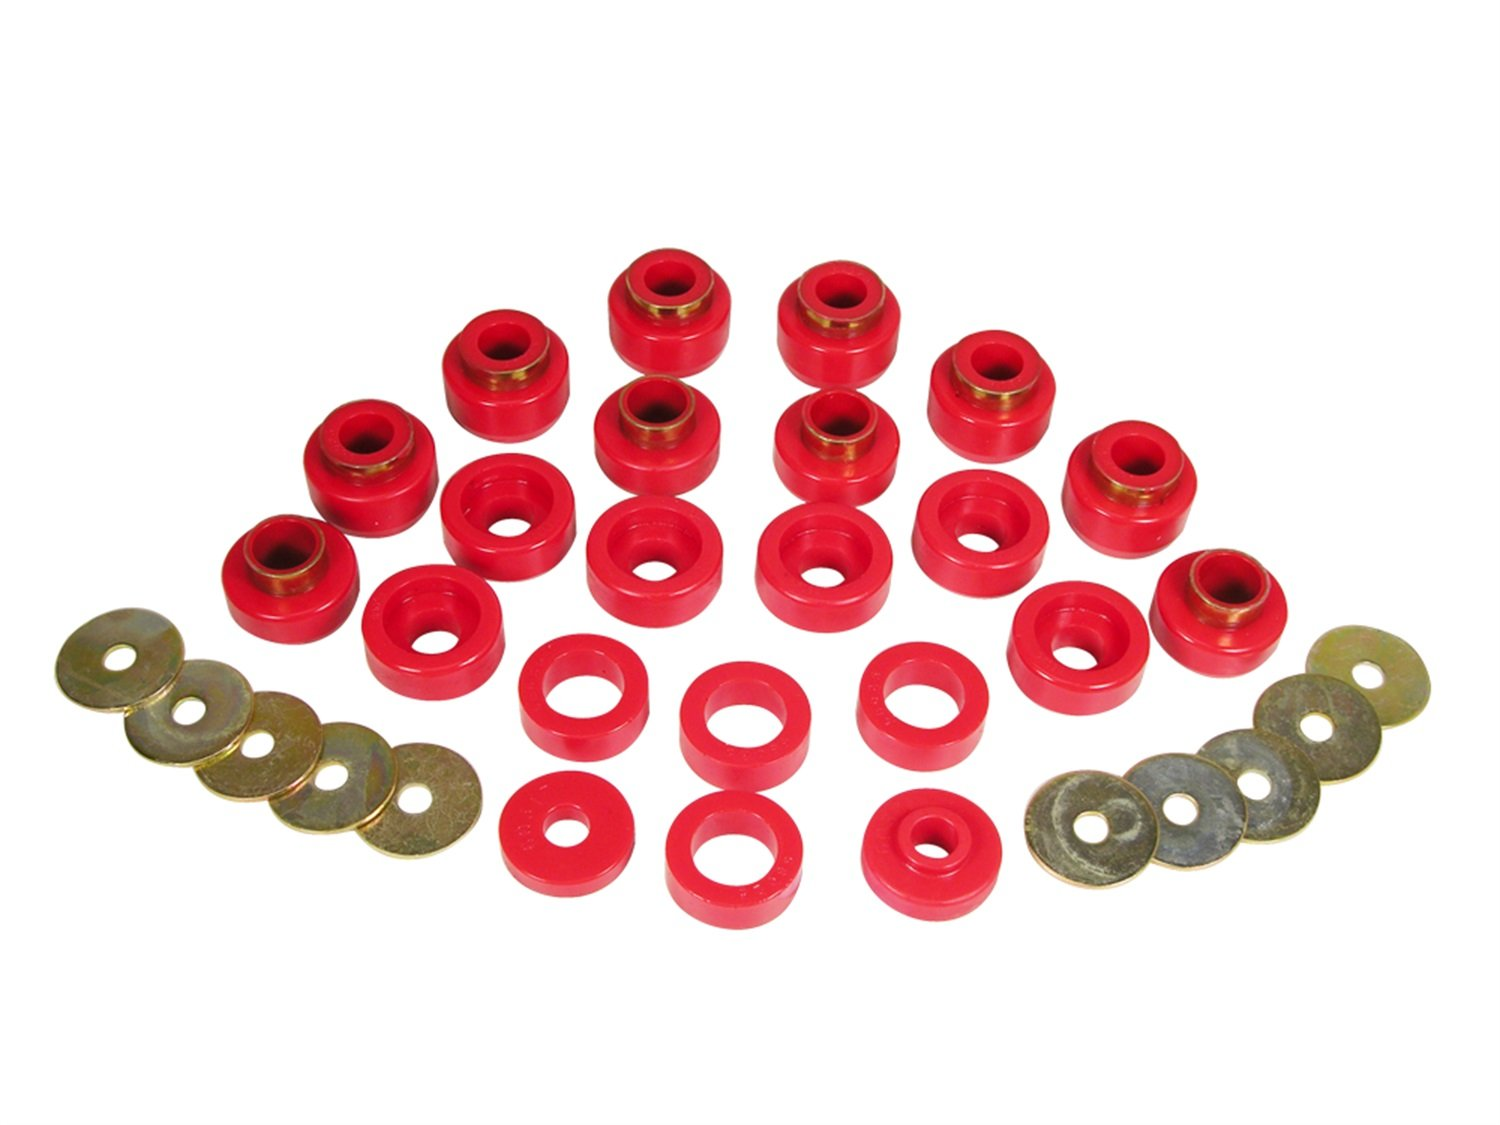 Prothane 1-105 Body Mount Bushing Kit for YJ, Red, 22 Piece by Prothane